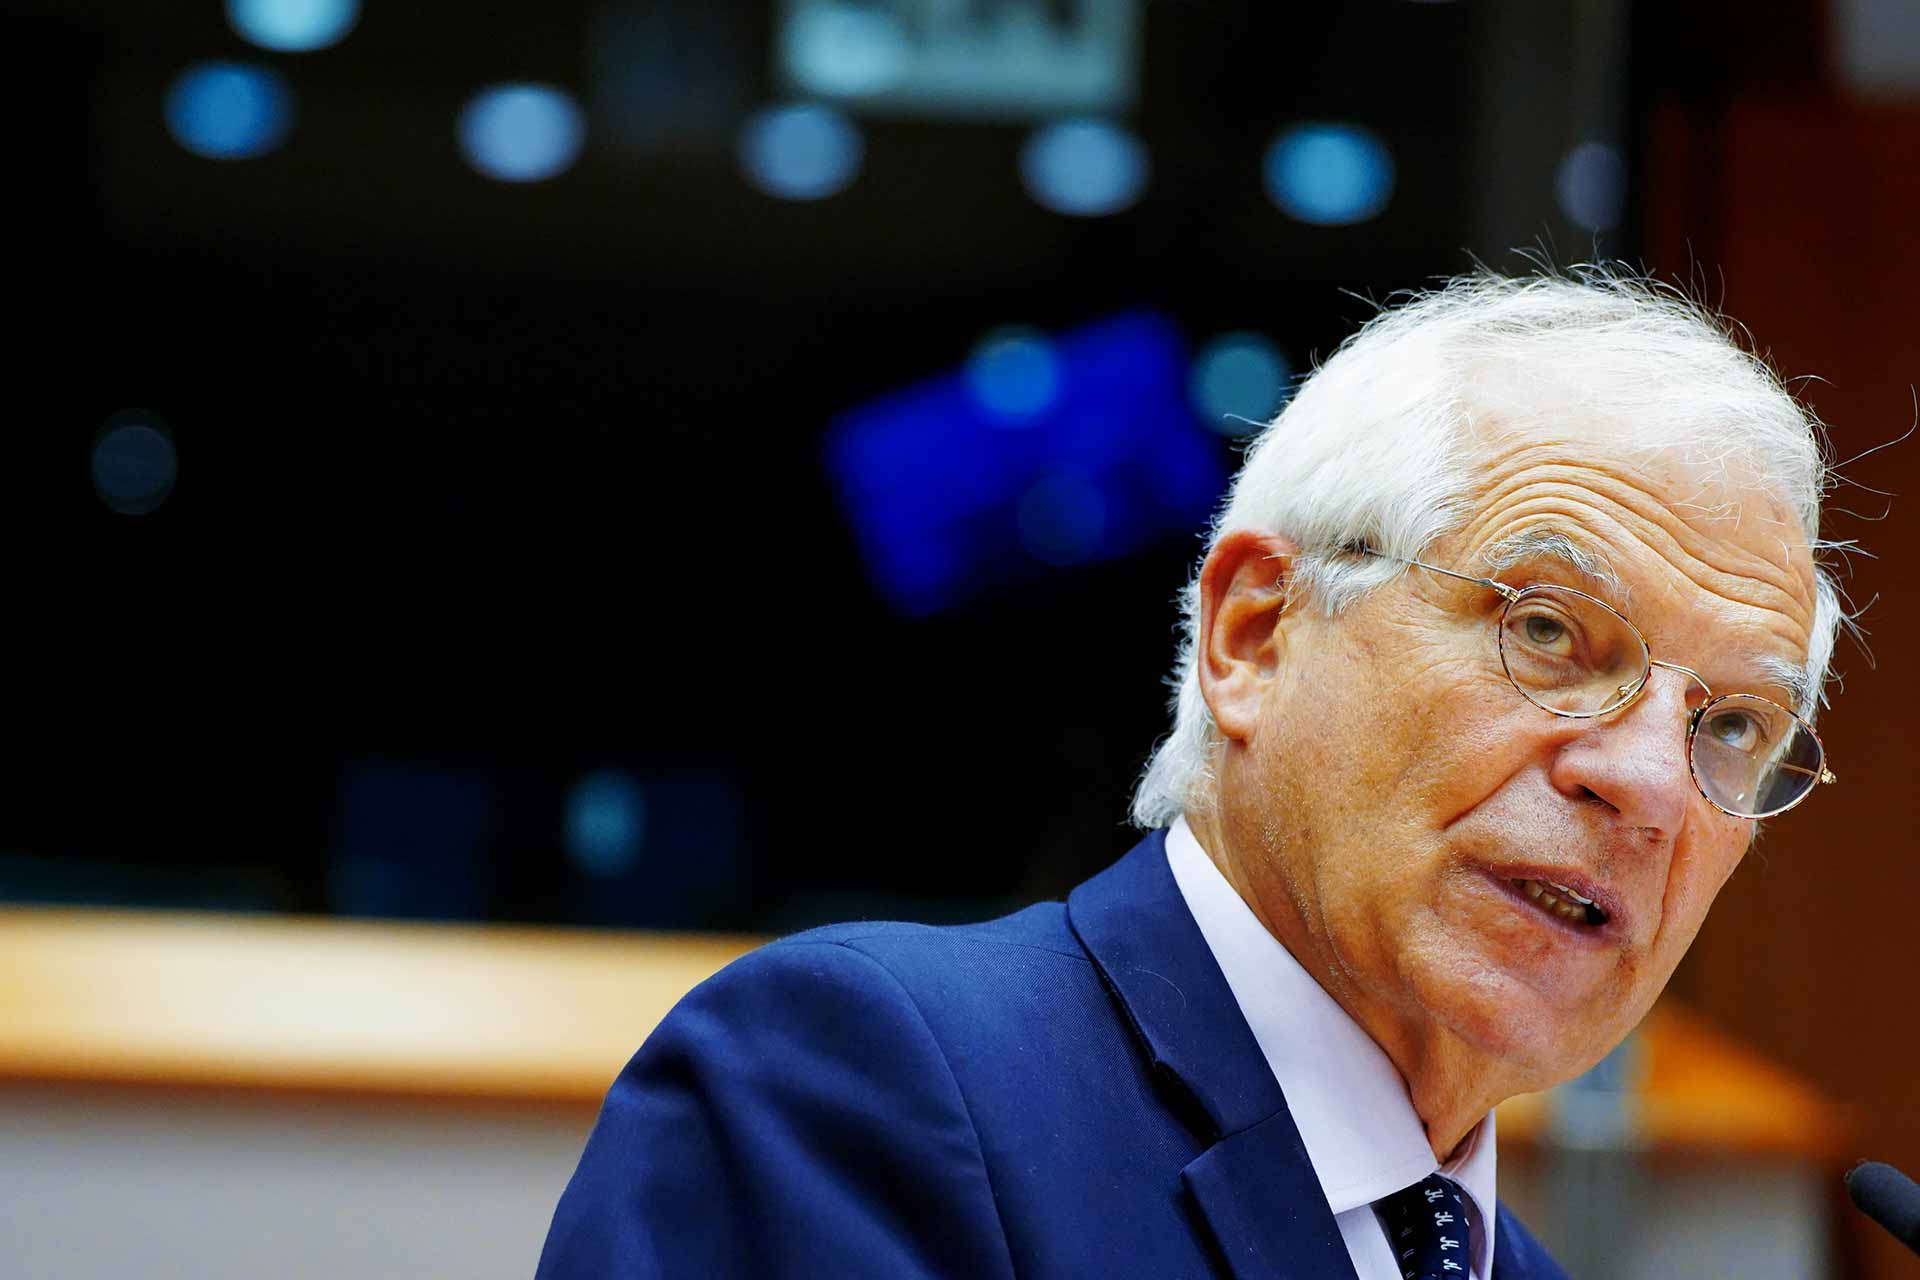 Josep Borrell Fontelles in the EUropean Parliament